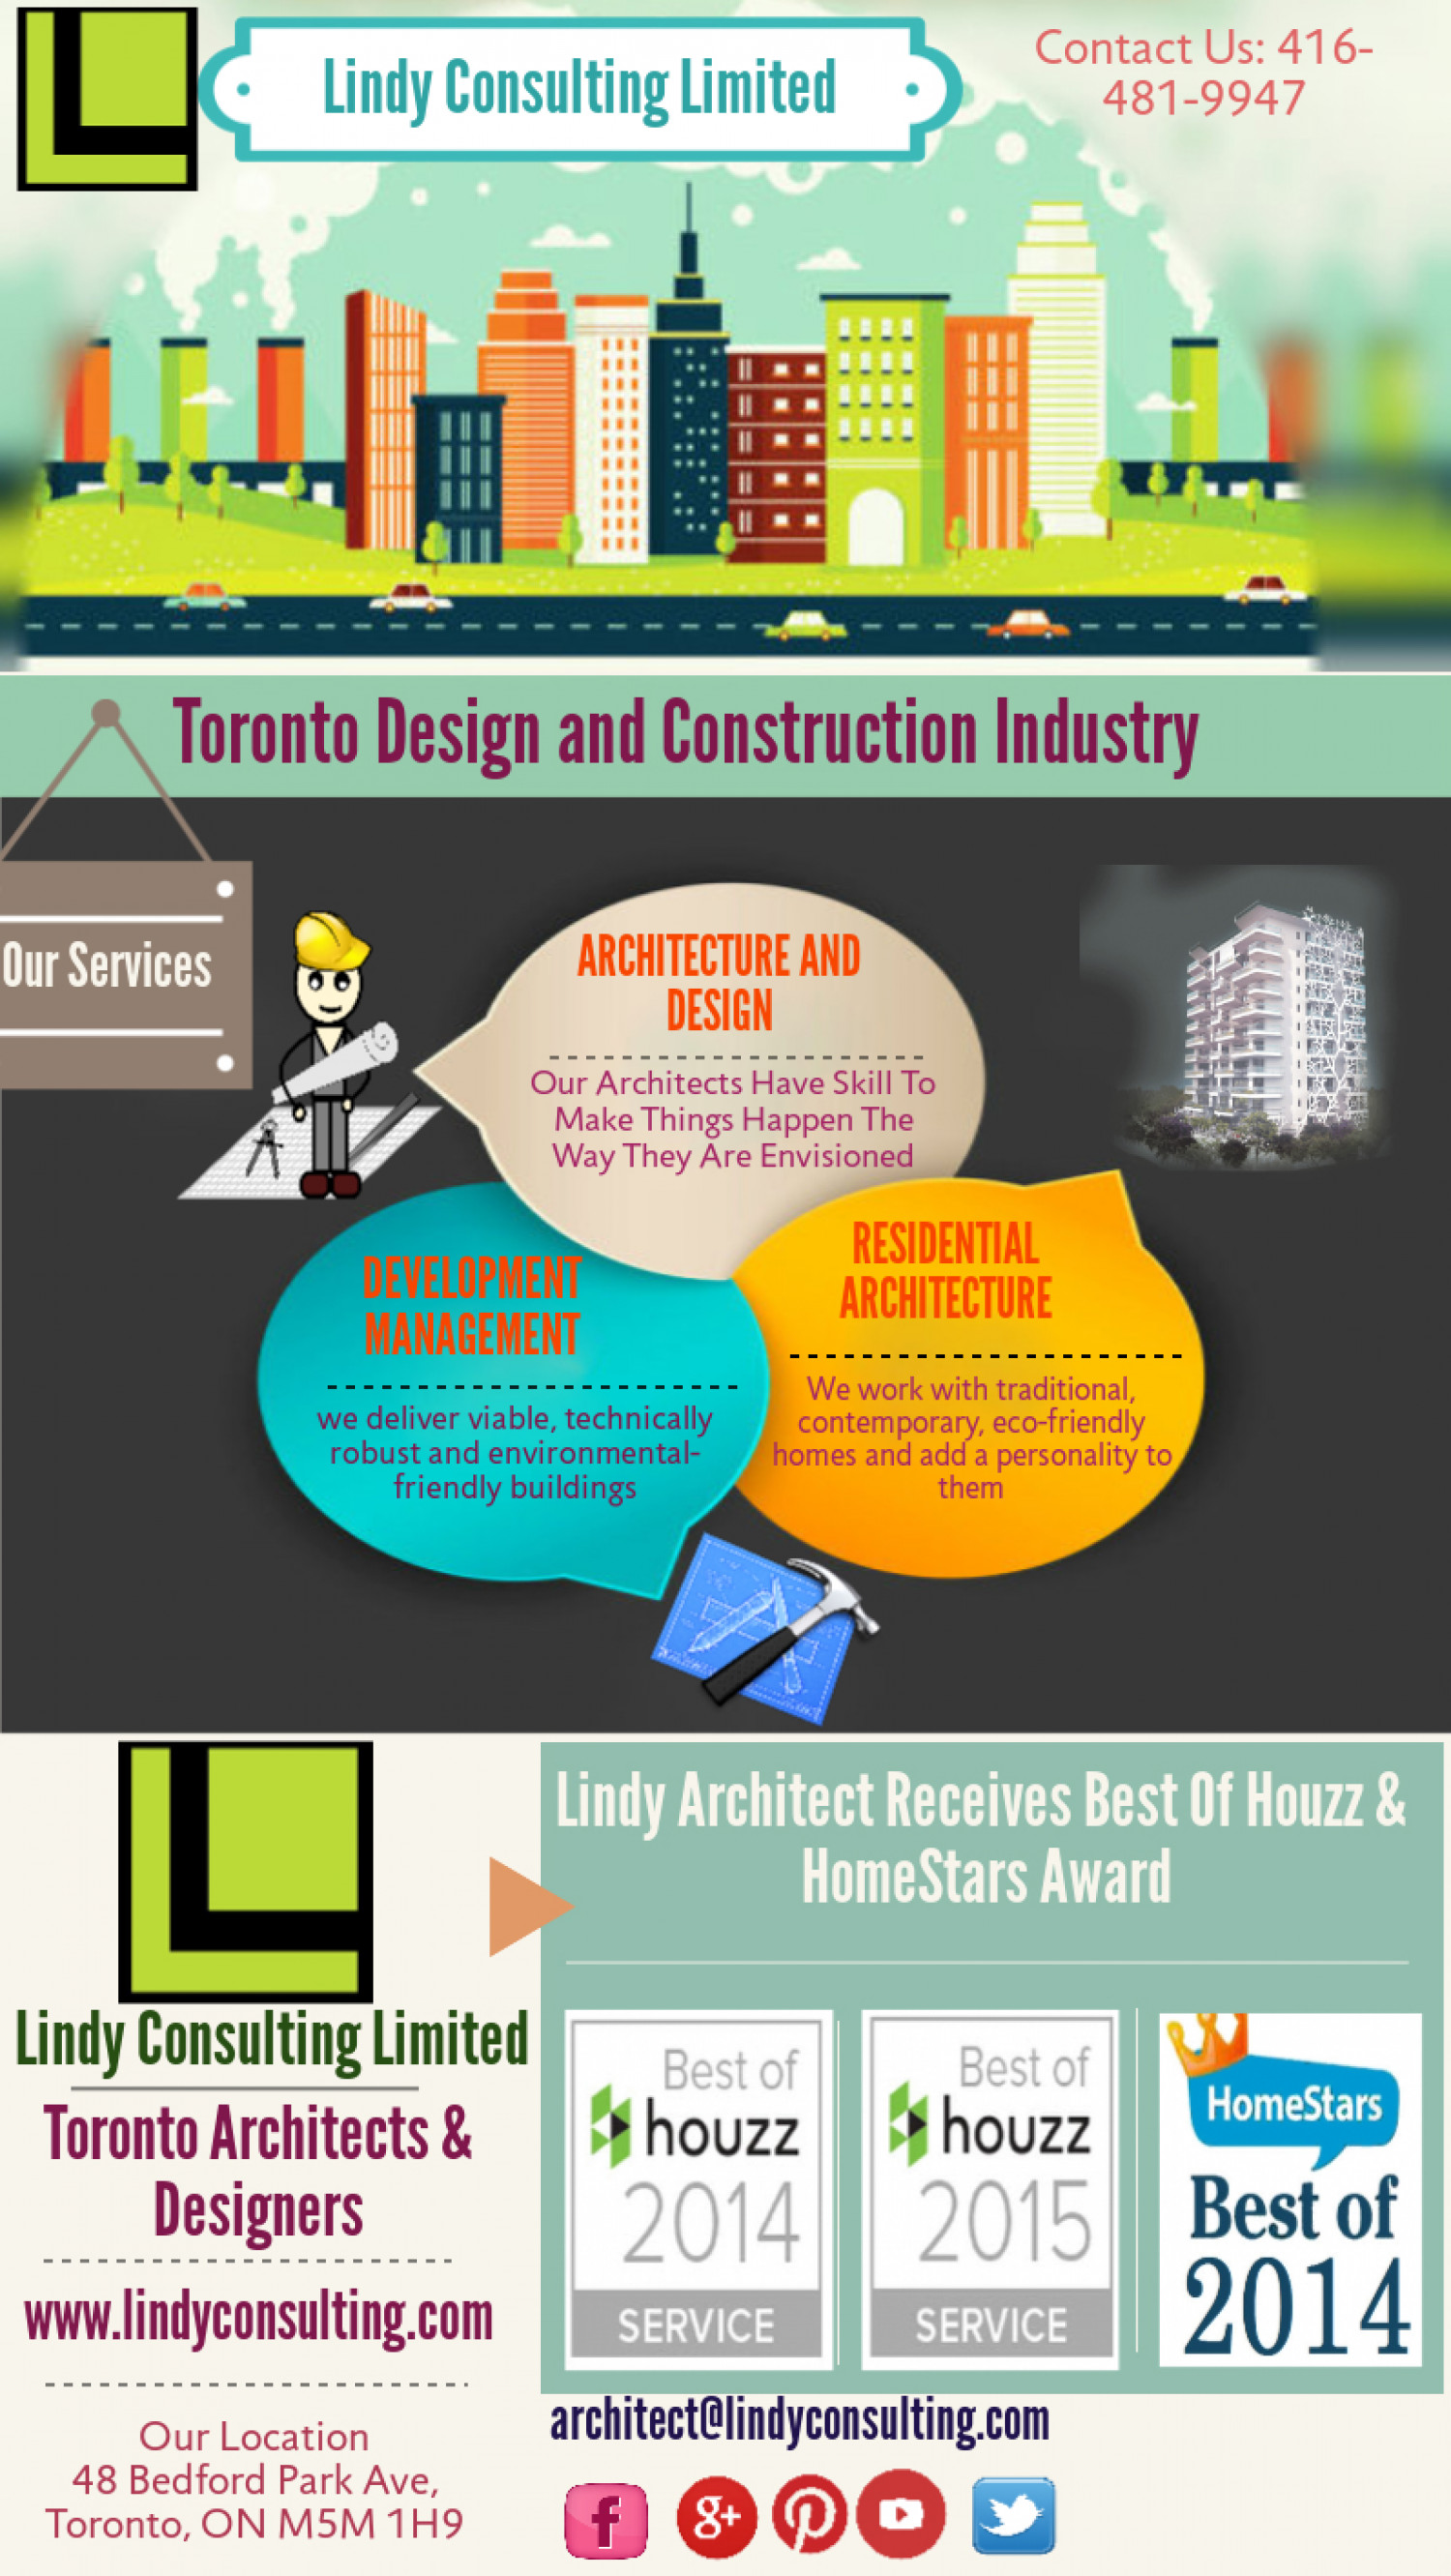 Lindy Consulting Architects - Toronto Construction Company Infographic